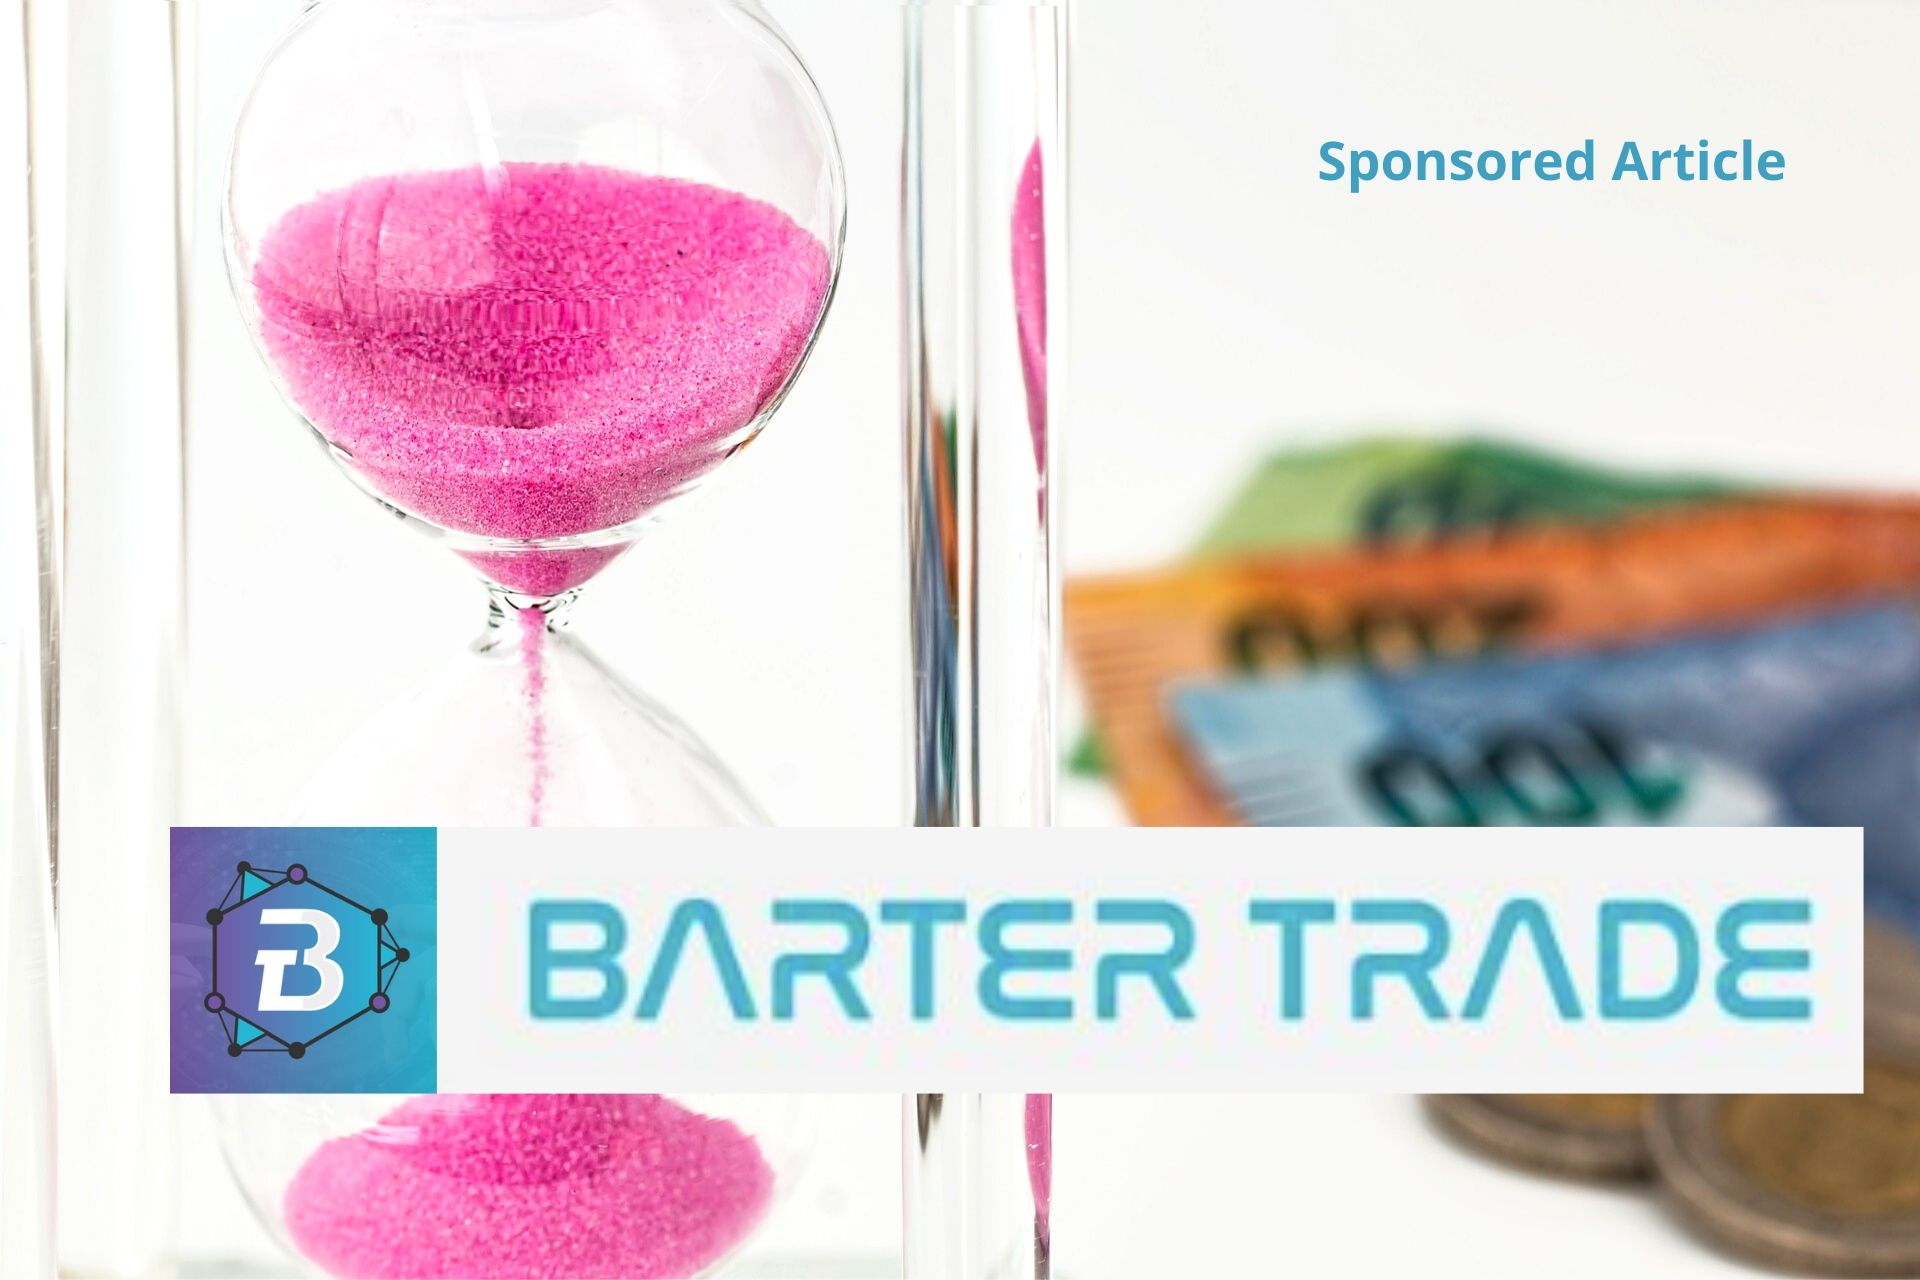 BarterTrade – Welcoming the masses